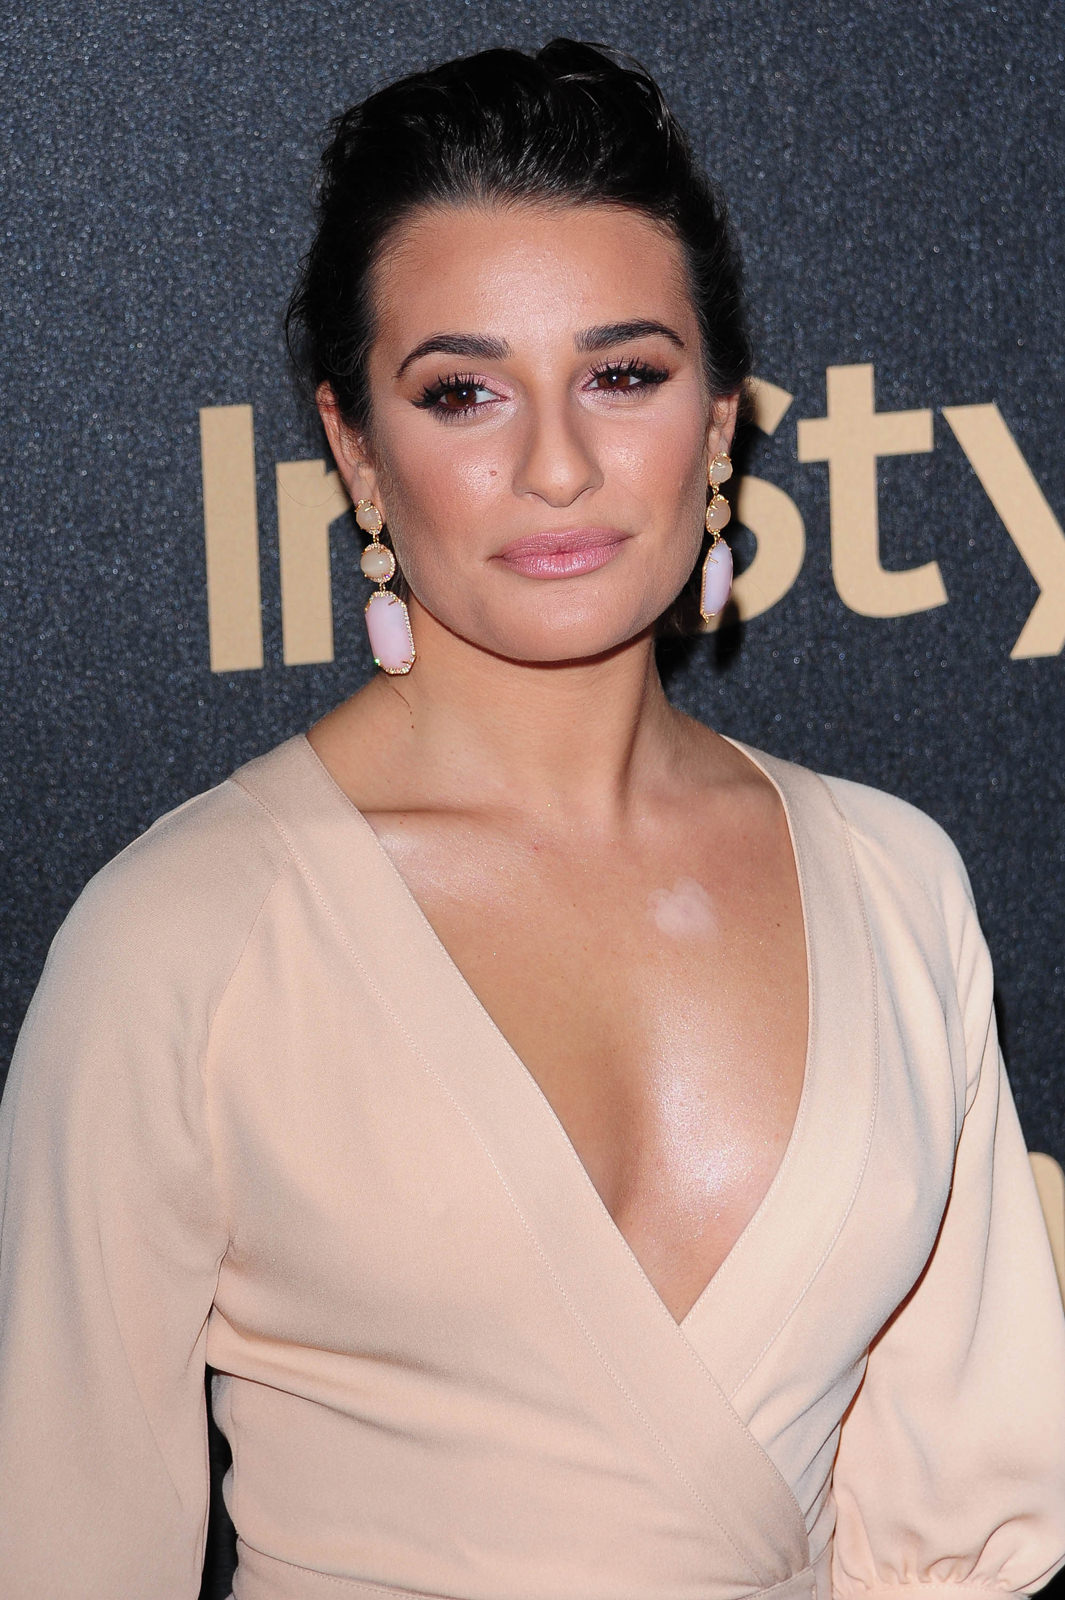 Lea Michele Photo Gallery